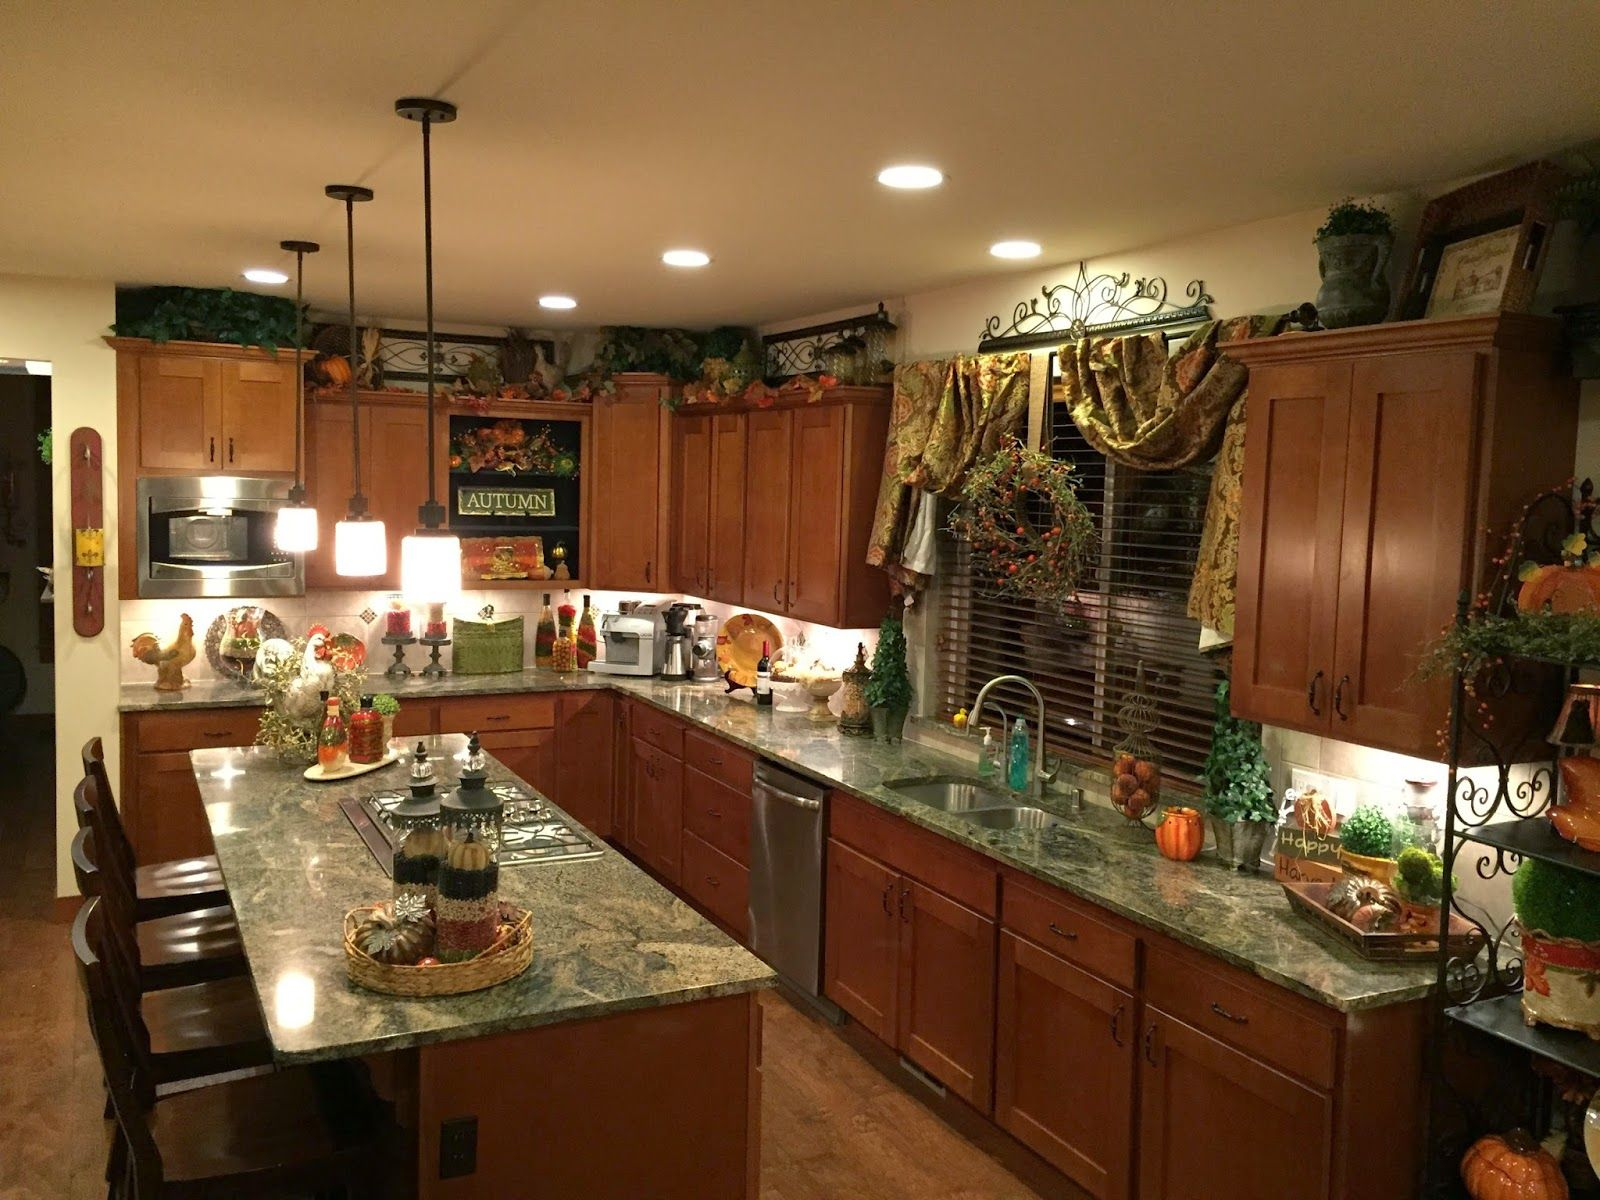 The Tuscan Home New Chandelier Decorated For Fall This kitchen